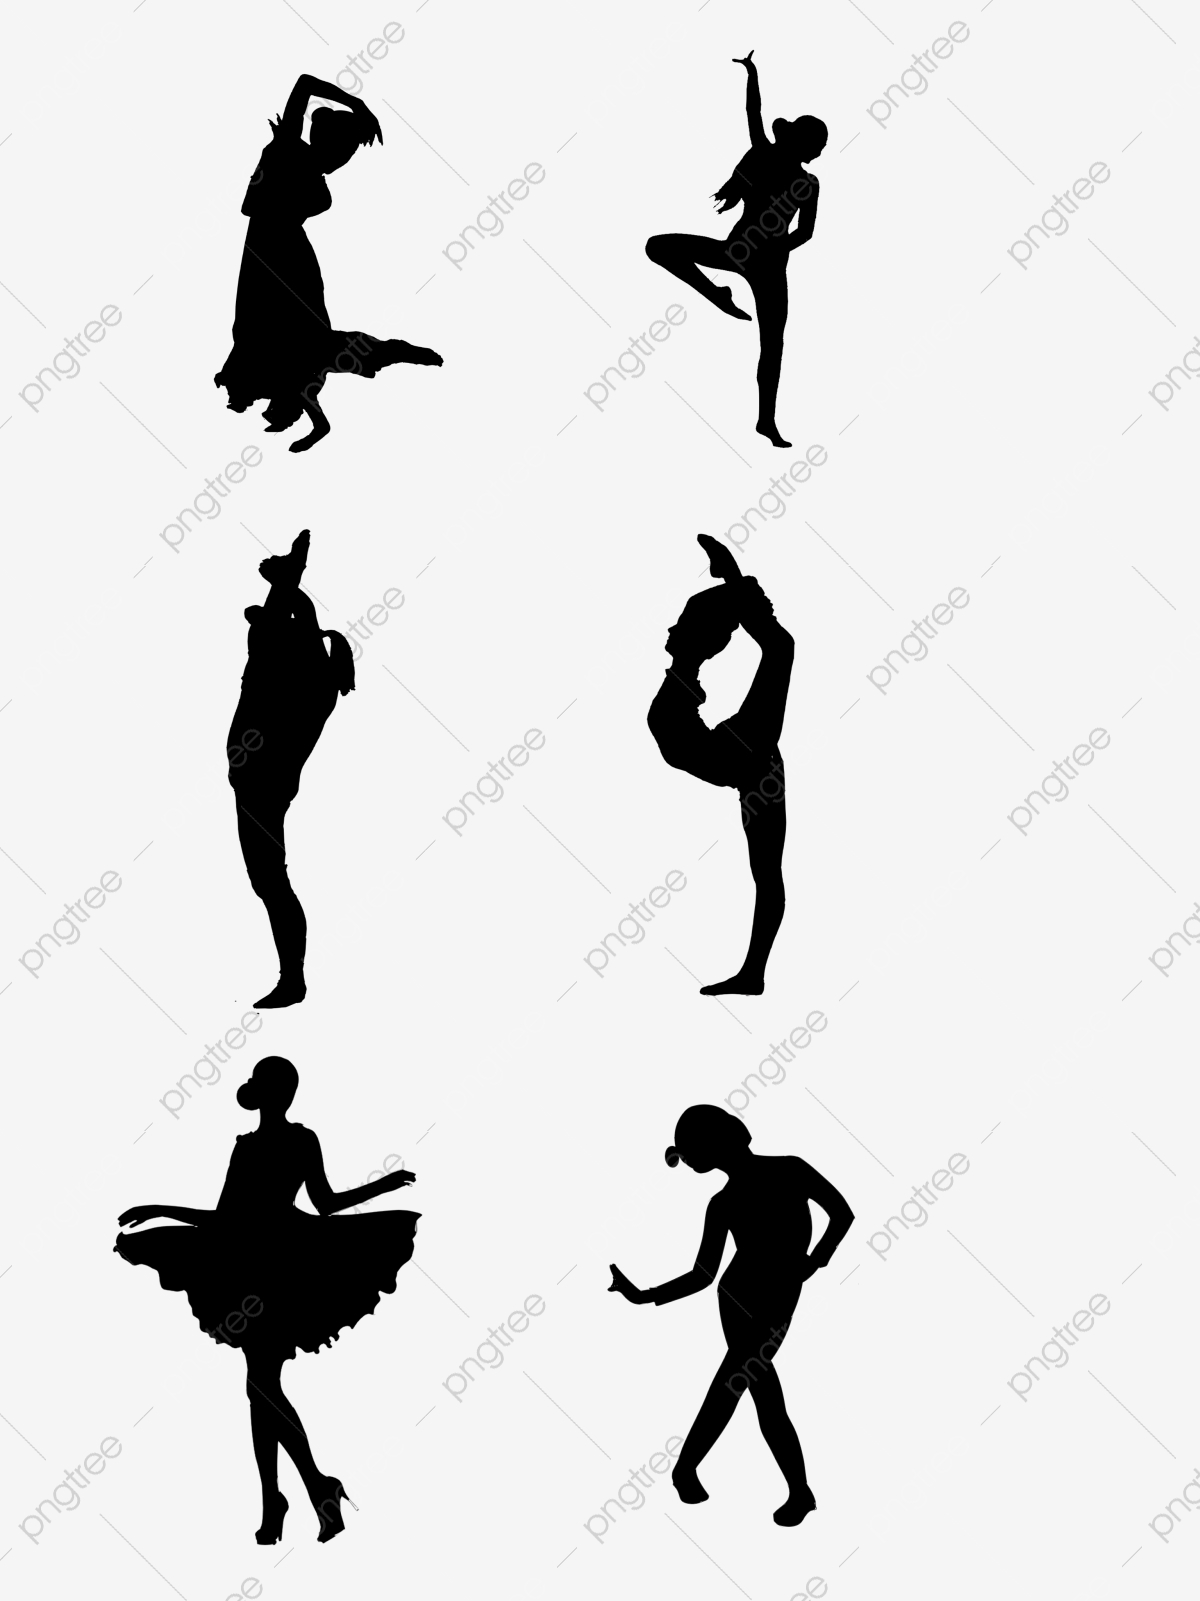 Free Black Dance Girl Adult Child Dance Black Silhouette Png Transparent Clipart Image And Psd File For Free Download